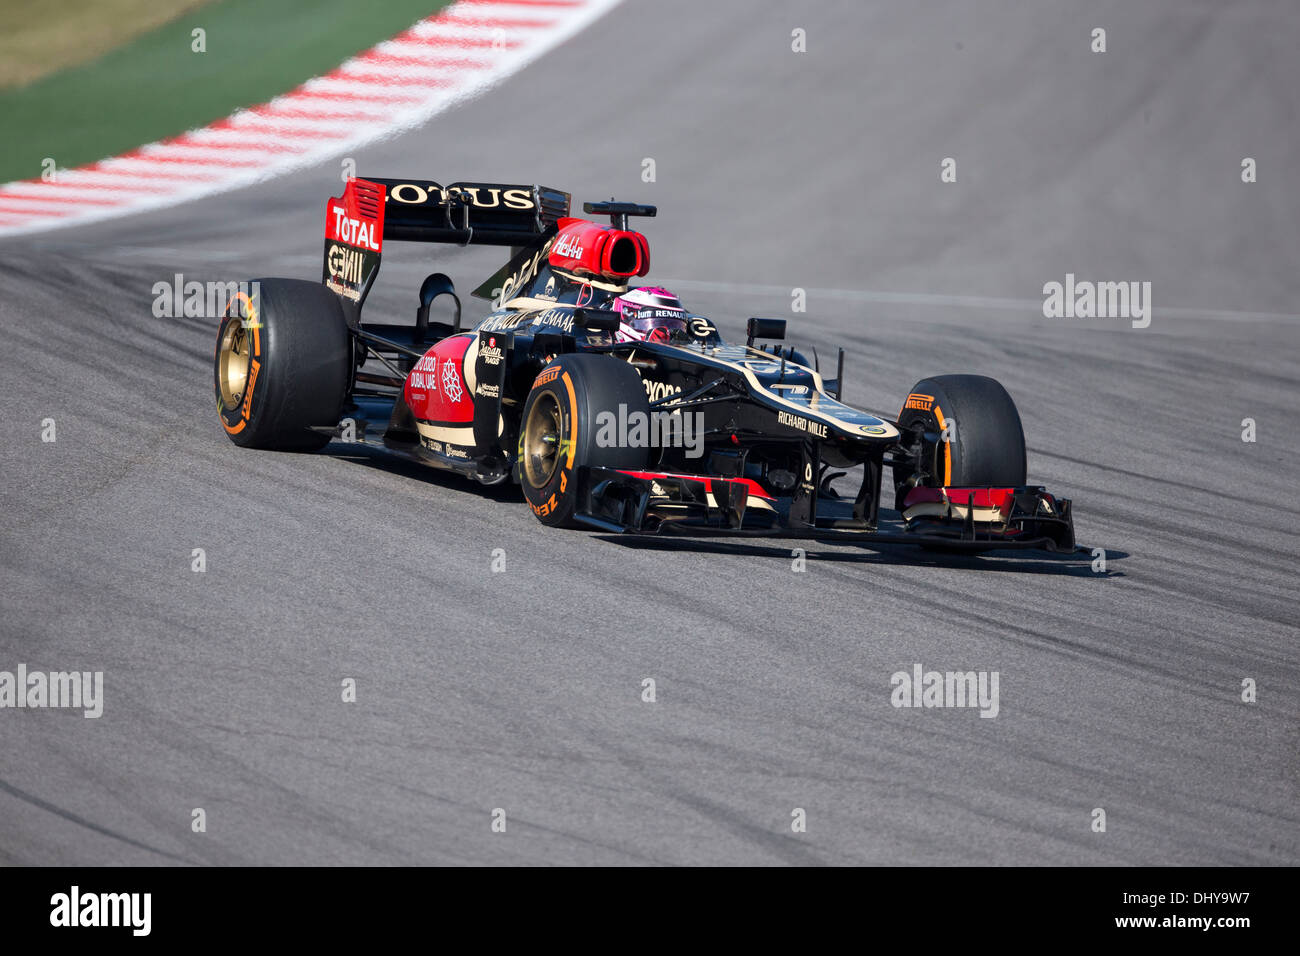 Driver Heikki Kovalainen of Lotus F1 racing at t practice session for the Formula 1 Grand Prix near Austin TX - Stock Image